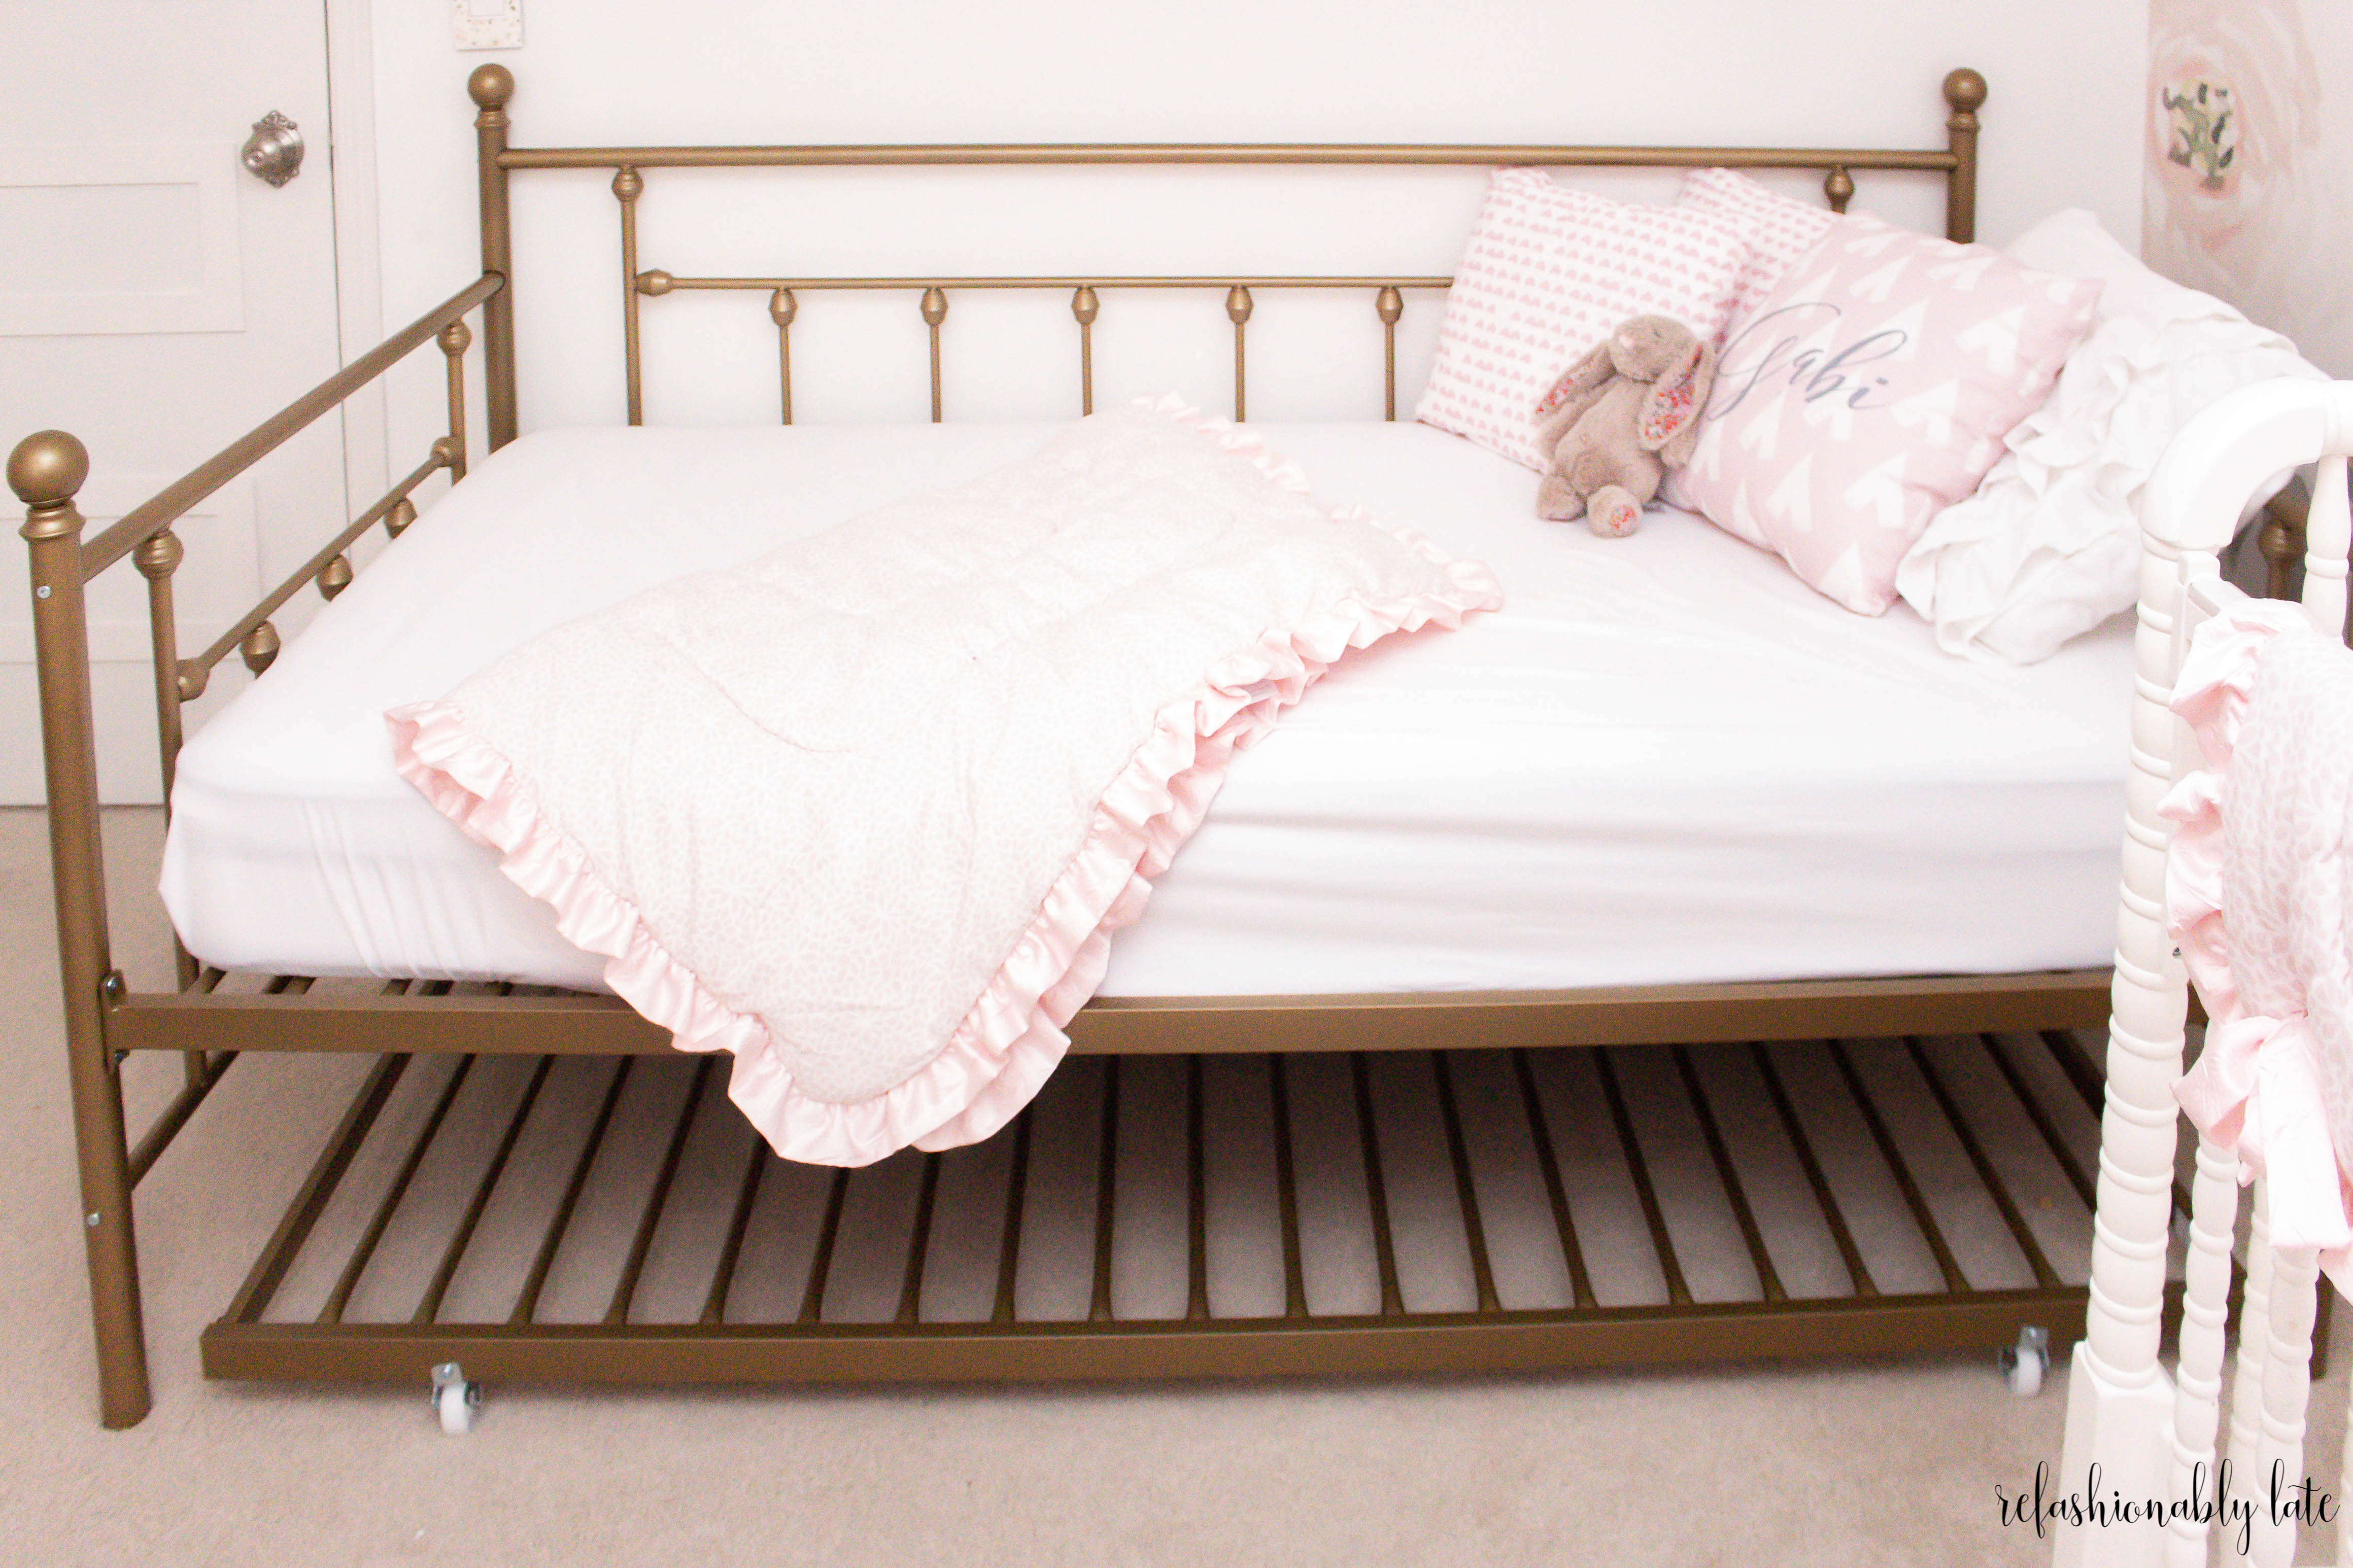 gold daybed with trundle underneath and white and pink sheets blankets and pillows